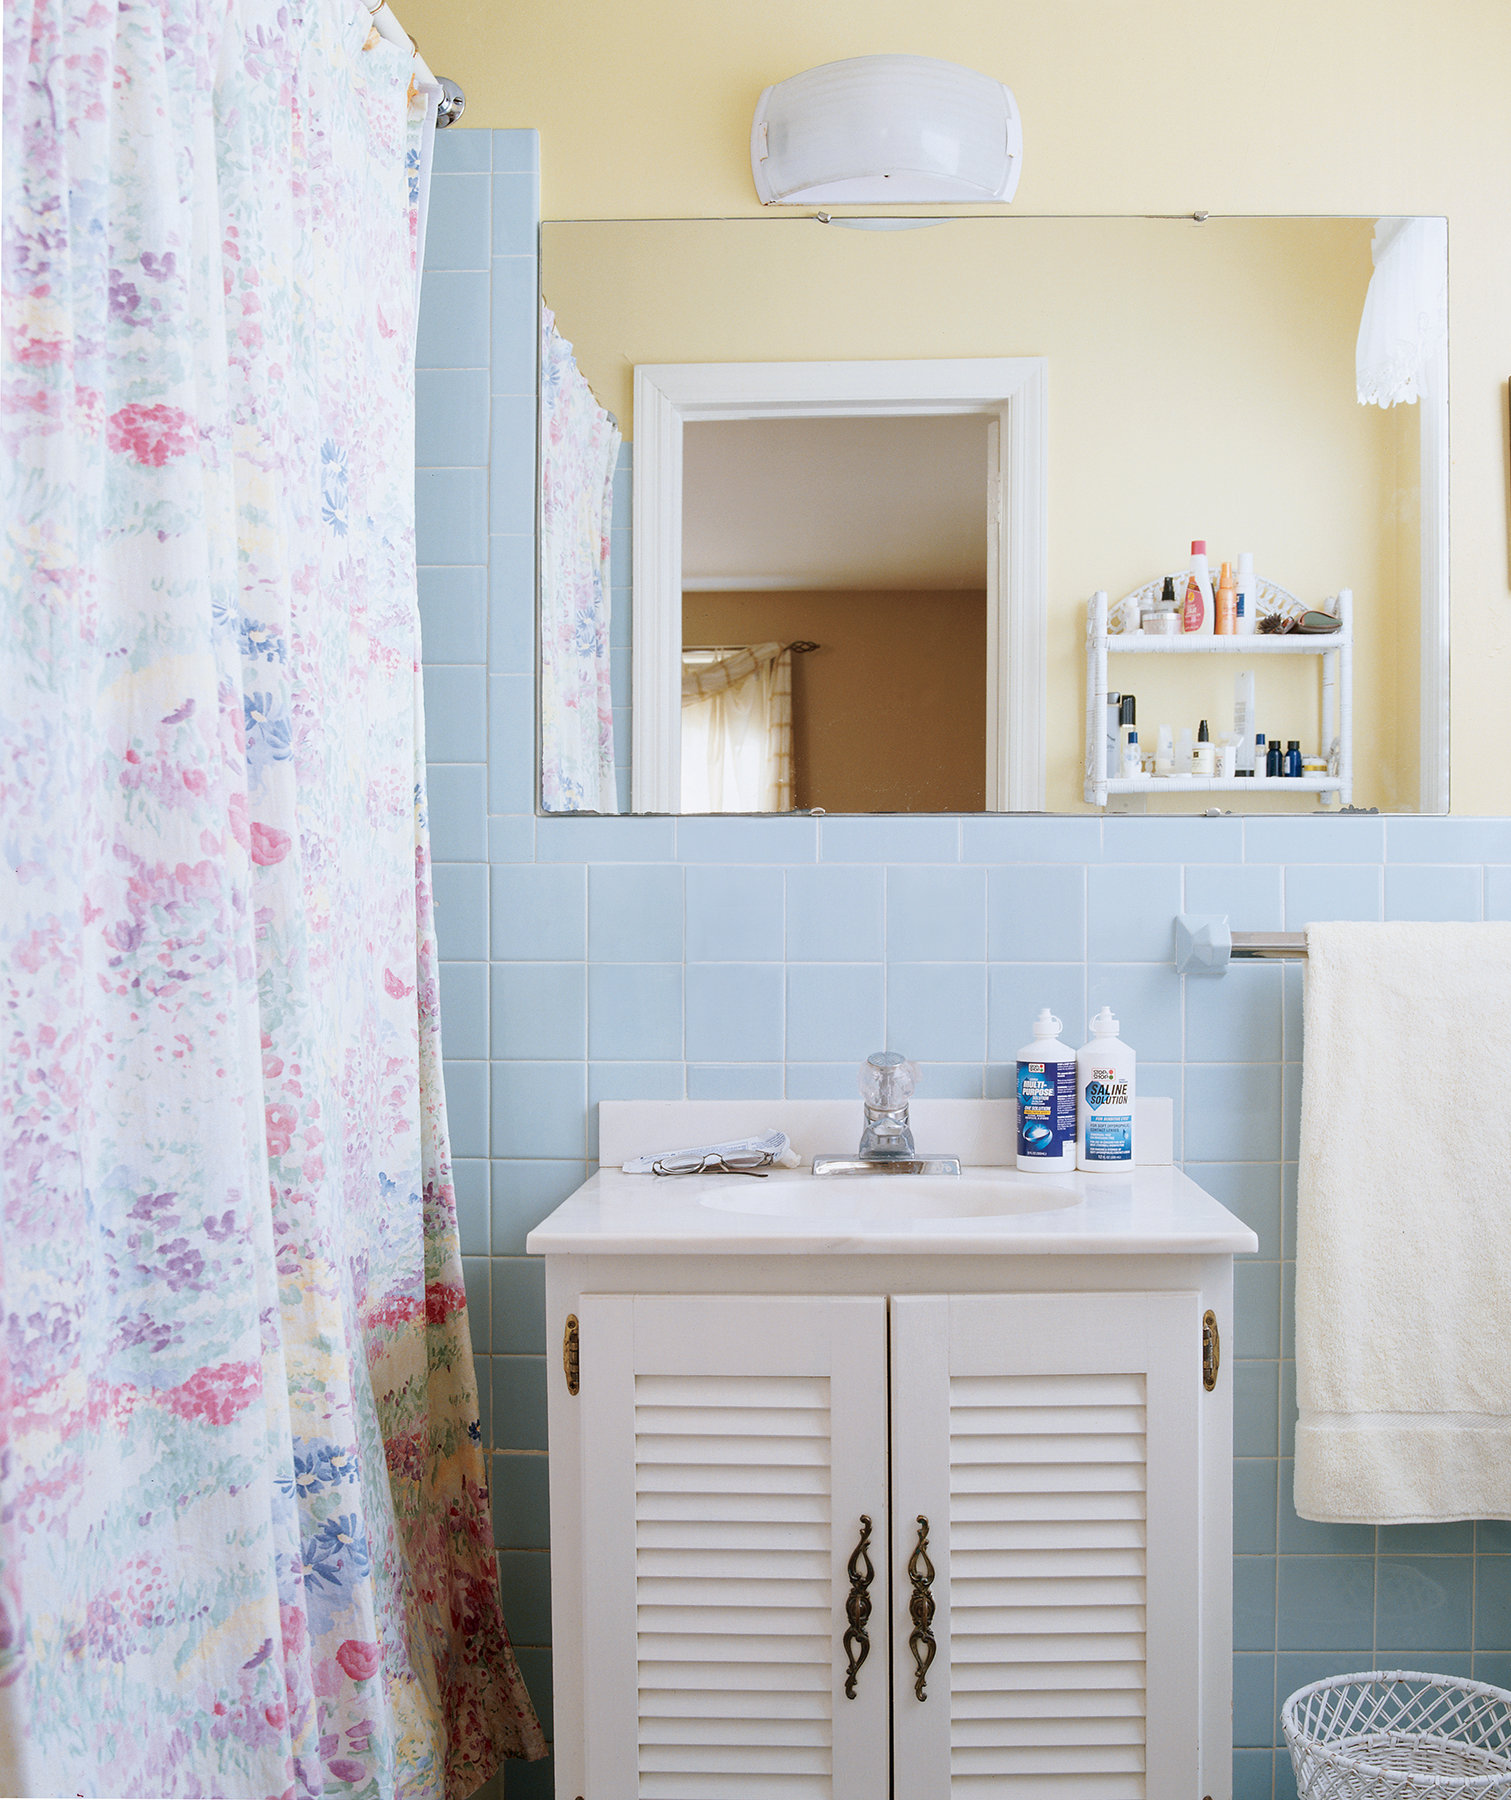 Tile walls ceiling deep clean your bathroom in 7 steps real simple - How to clean bathroom wall tiles easily ...